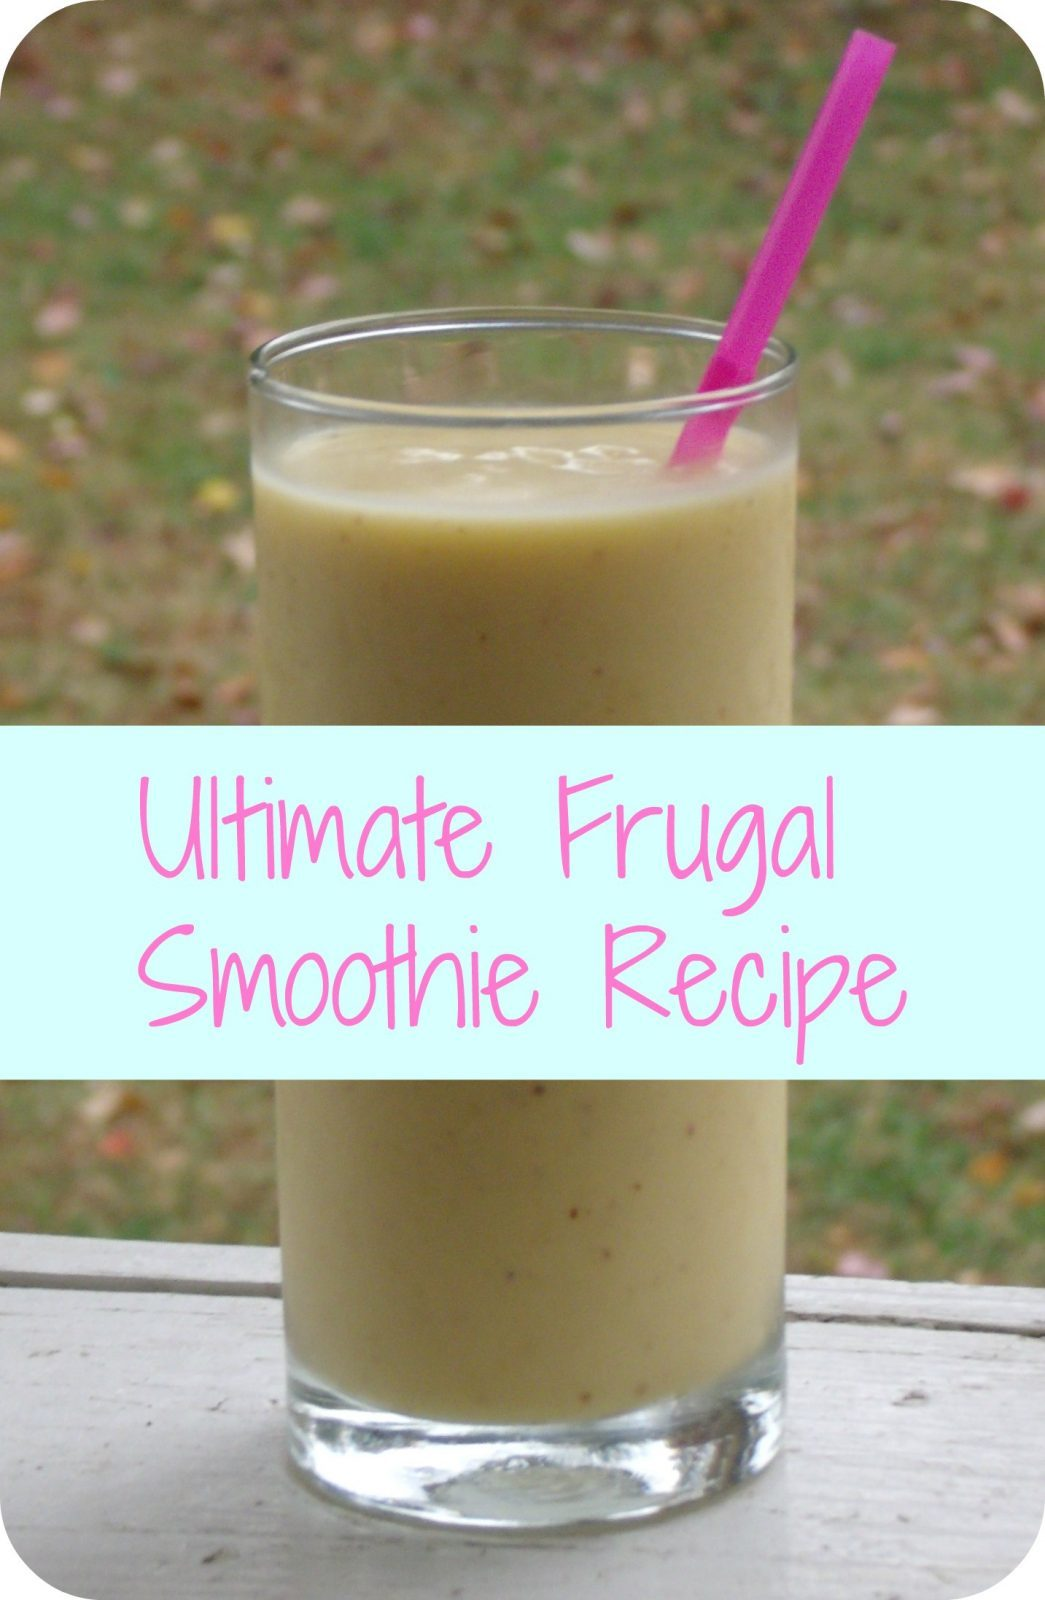 Ultimate Frugal Smoothie Recipe